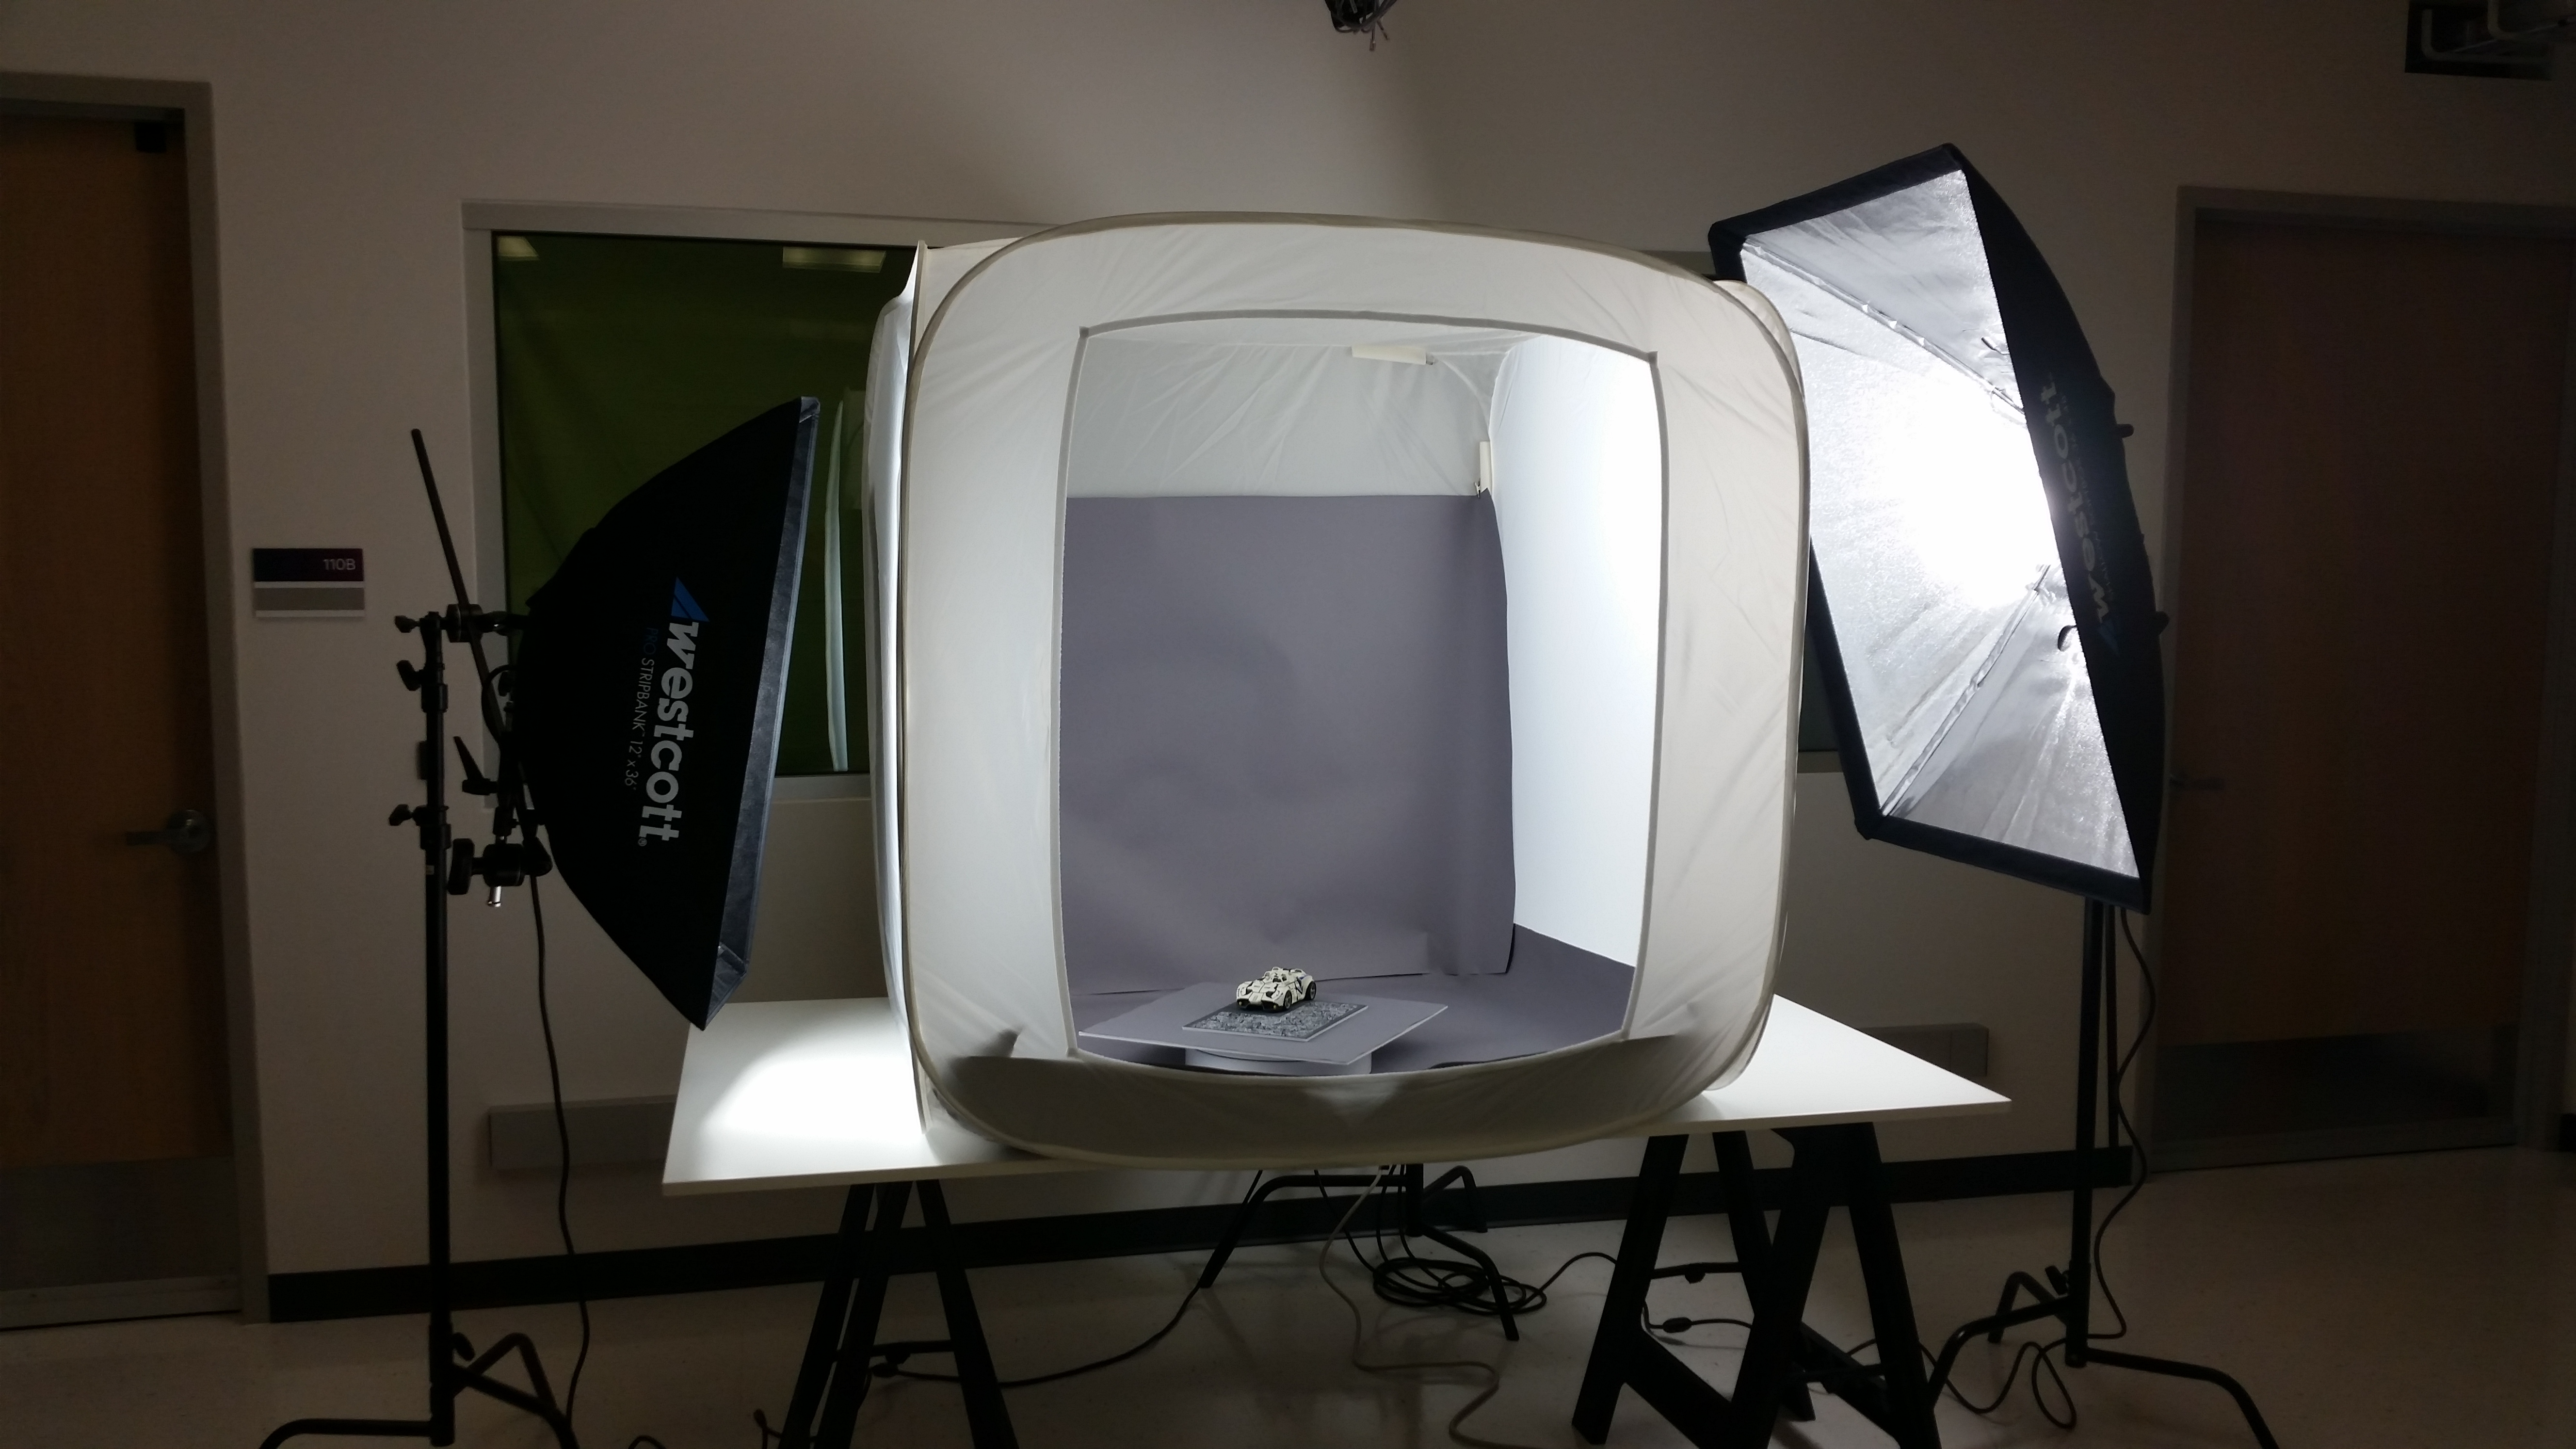 scanning environment using a light tent